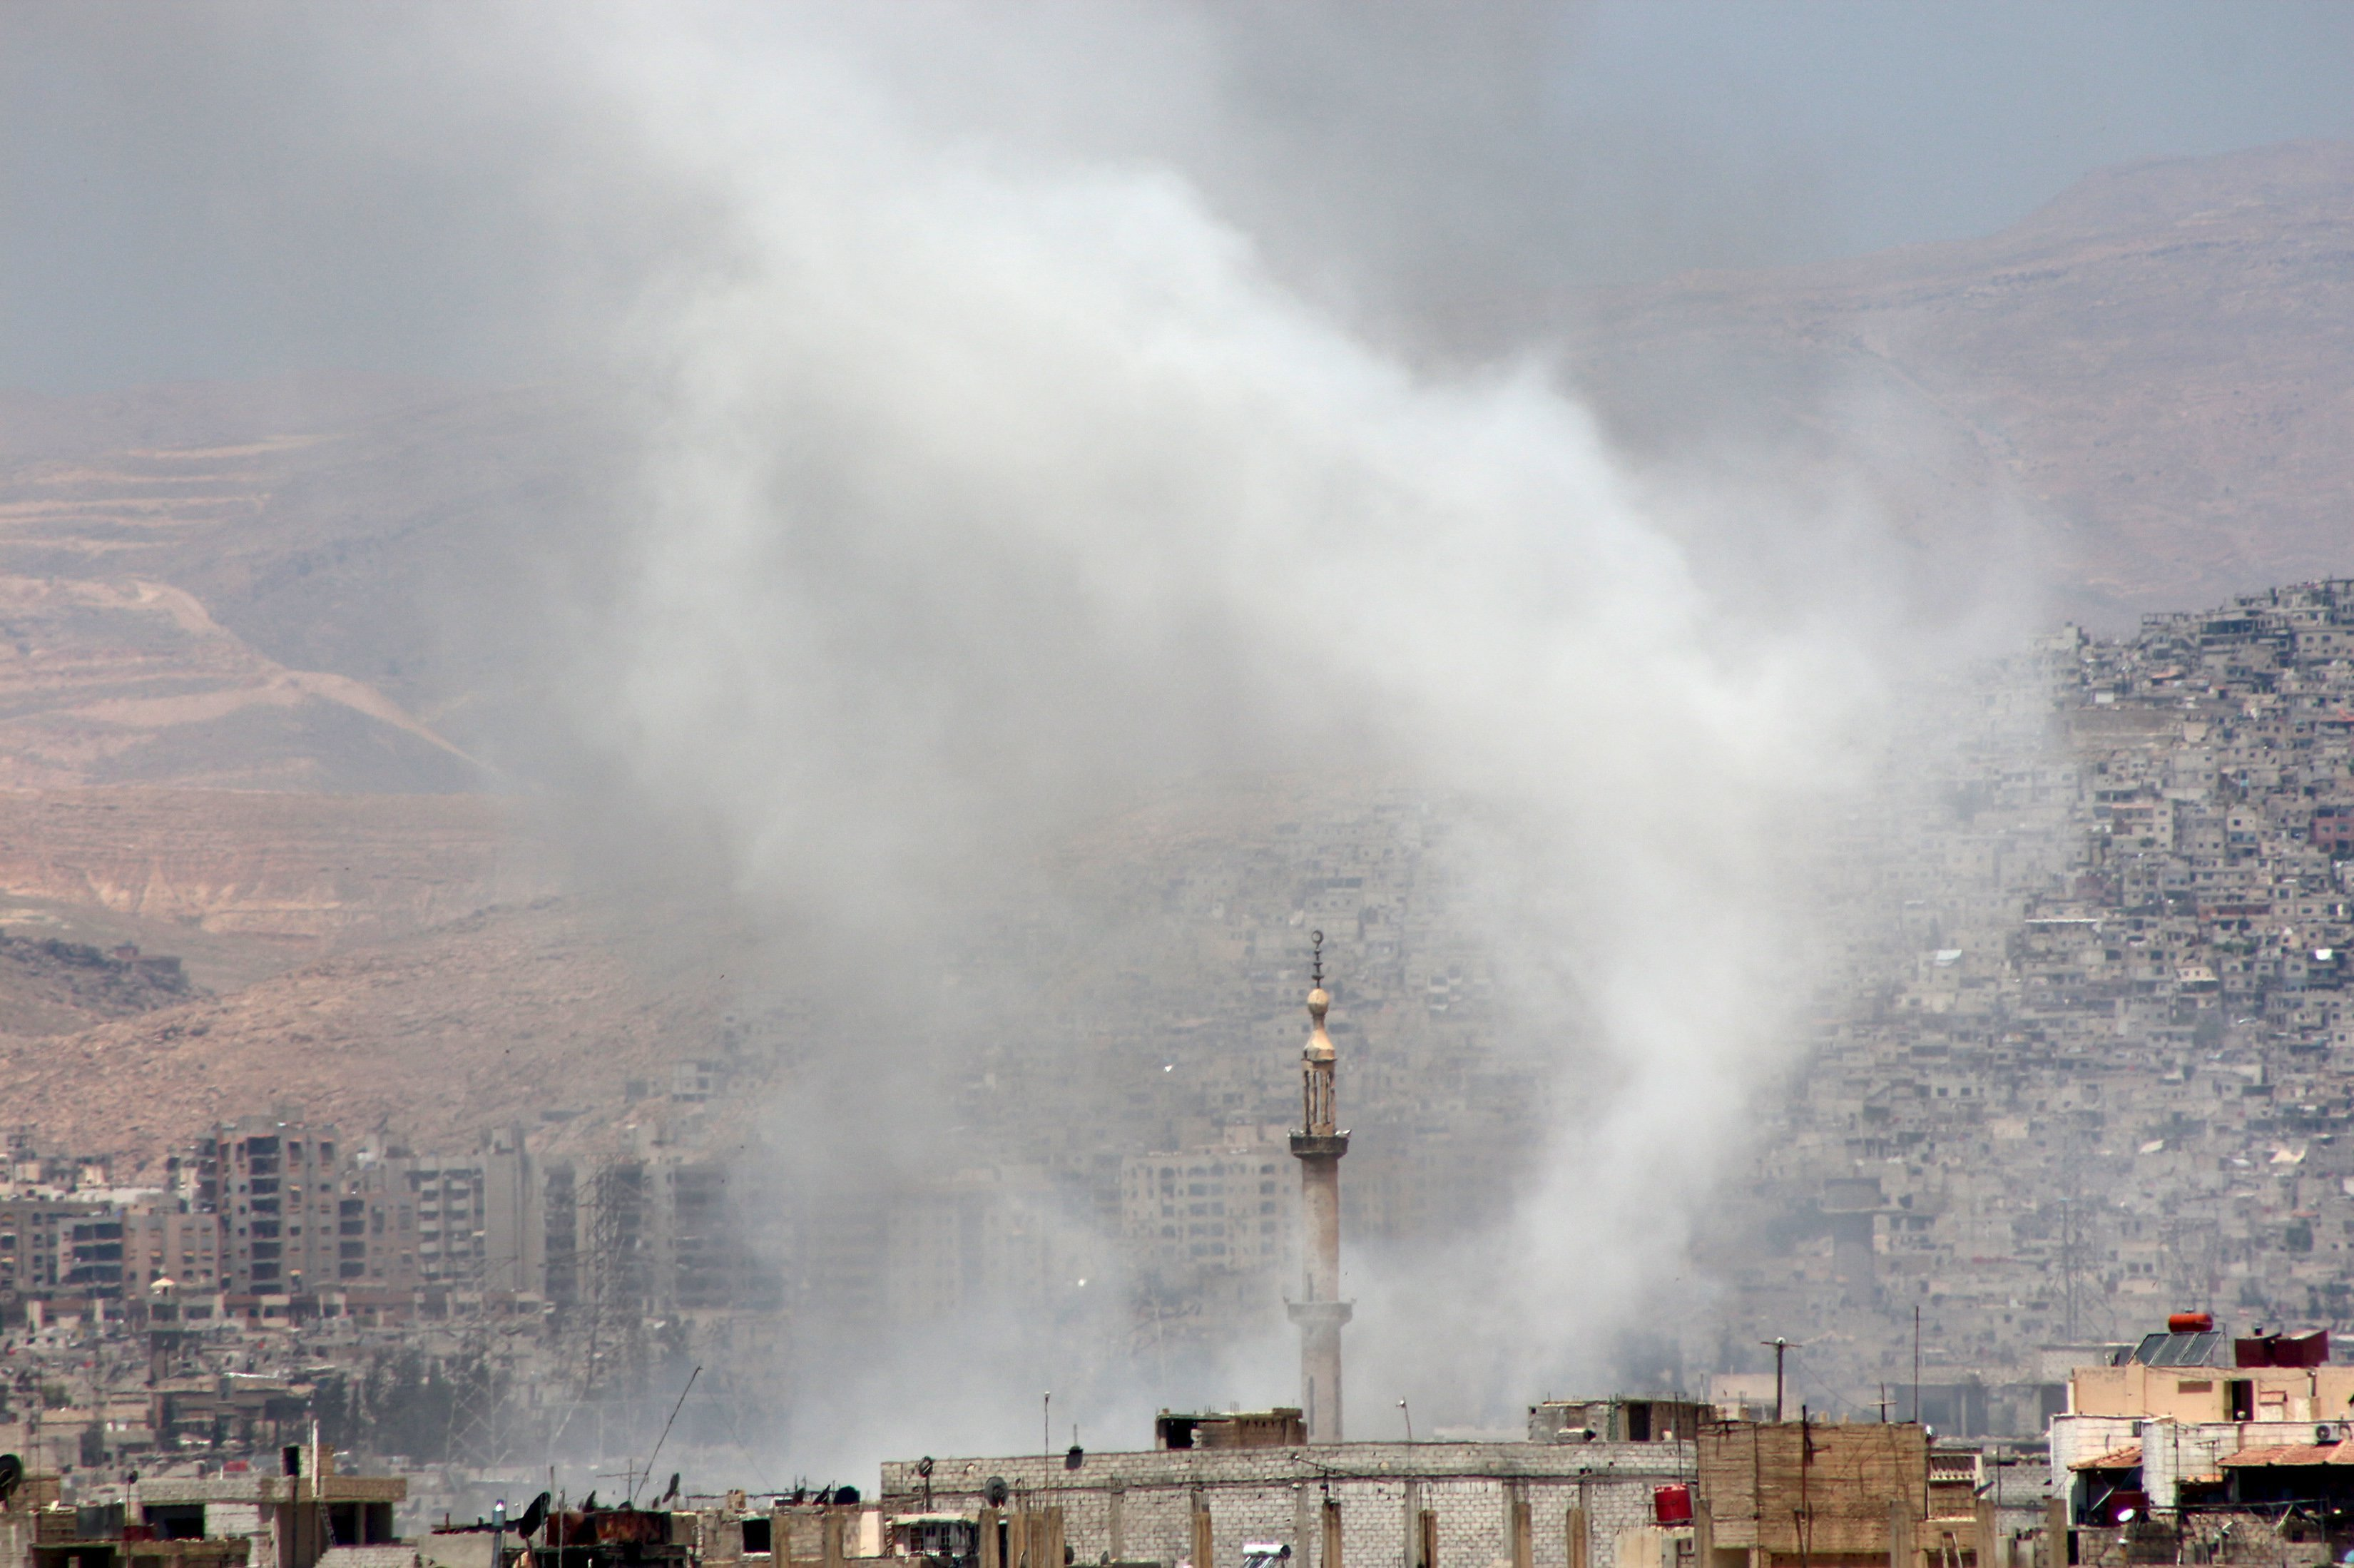 Smoke rises after what activists said was due to airstrikes by forces loyal to Syria's President Bashar al-Assad in Erbeen in the eastern Damascus suburb of Ghouta May 17, 2015.